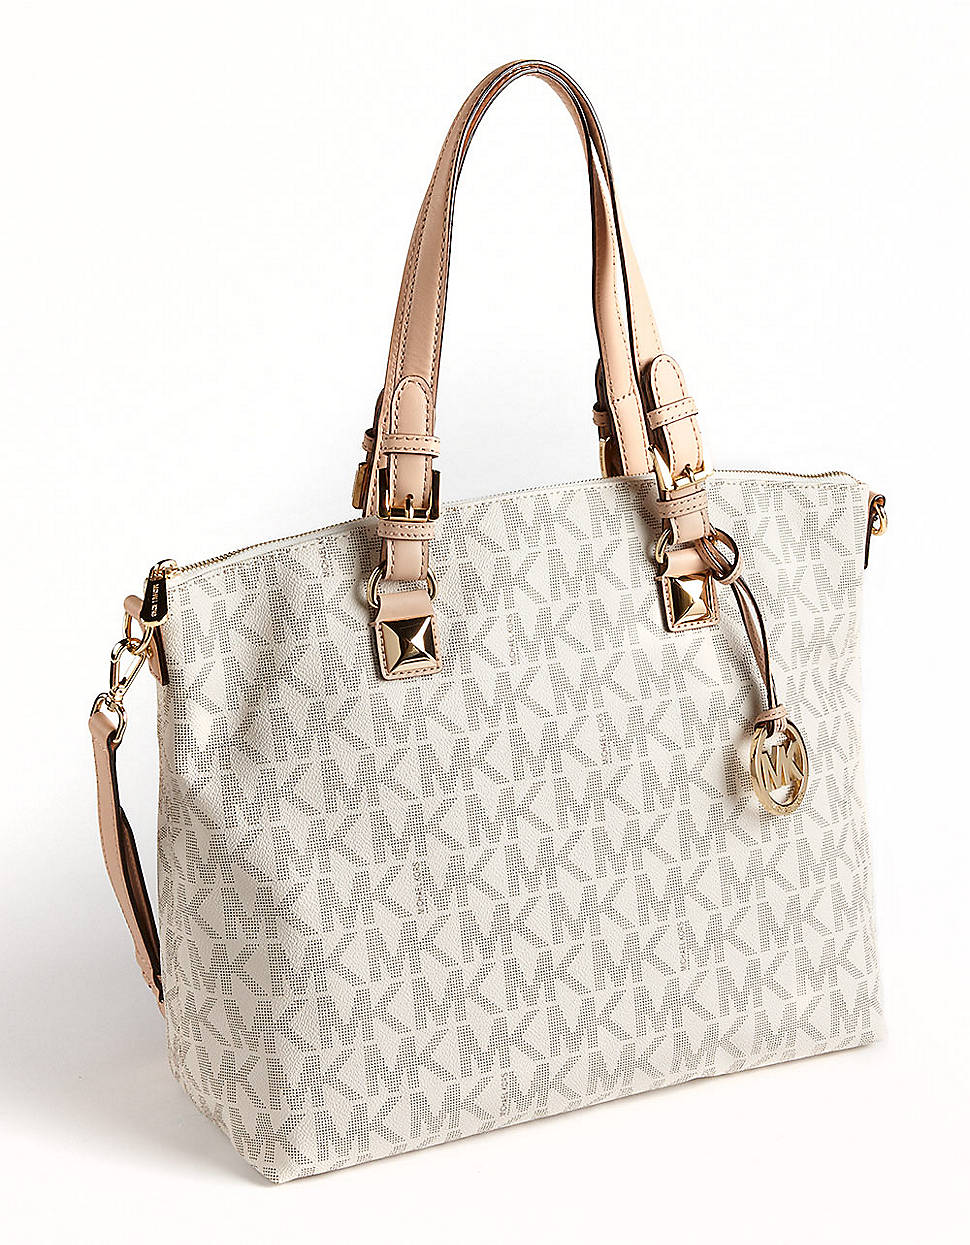 Shop Michael Kors Signature Collection at Macy's! Buy Michael Kors signature handbags, totes and wallets and get FREE SHIPPING with $99 purchase! Macy's Presents: The Edit- A curated mix of fashion and inspiration Check It Out. Free Shipping with $25 purchase + Free Store Pickup. Contiguous US.